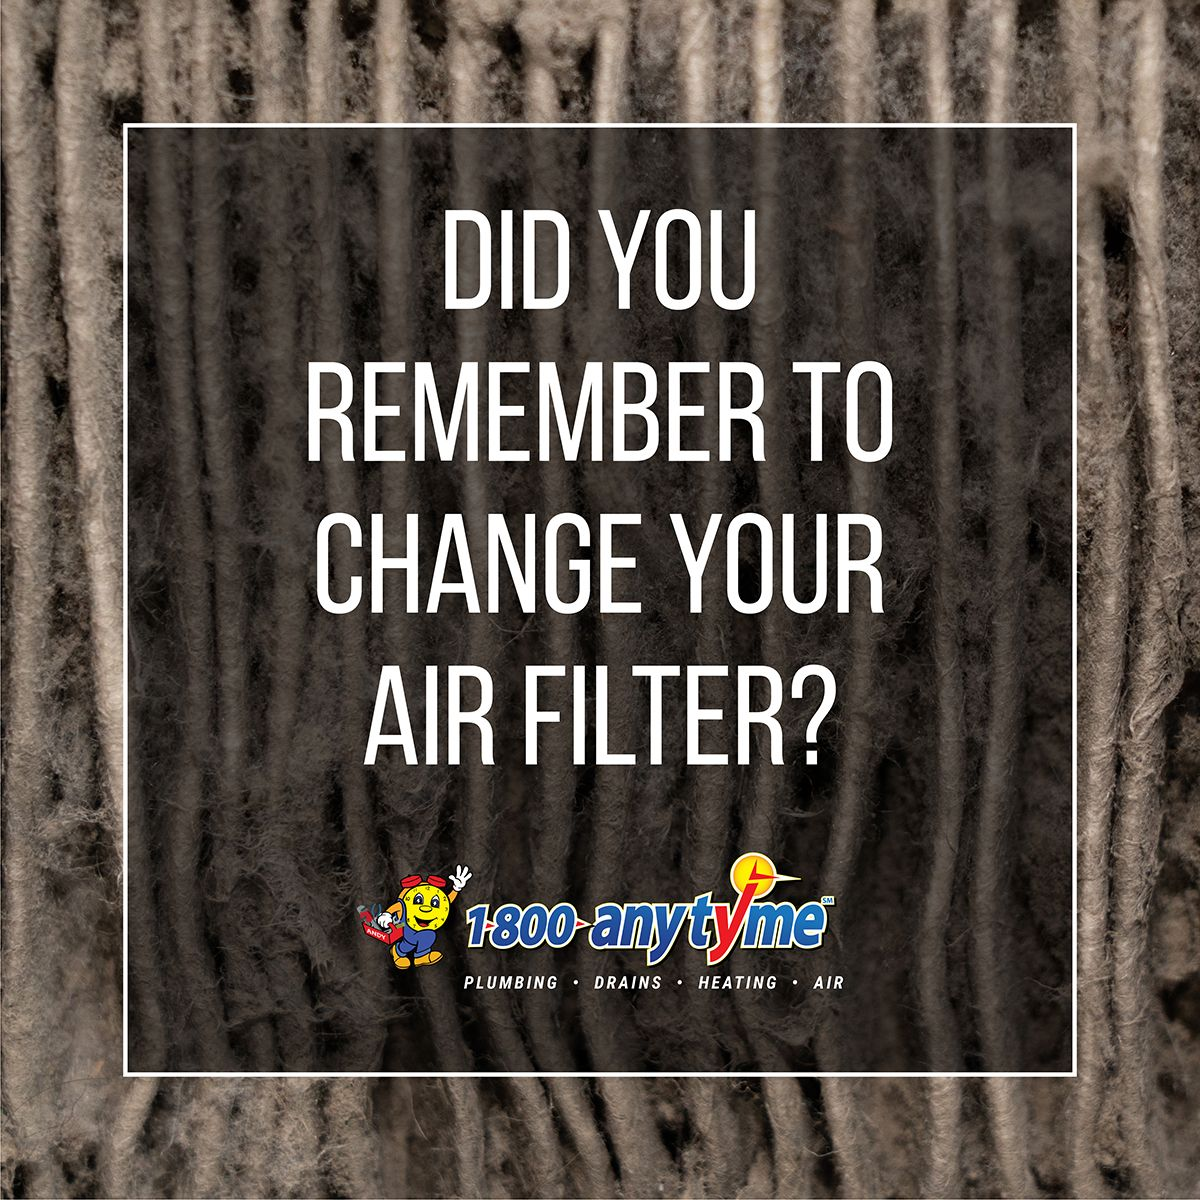 Did you remember to change your air filter